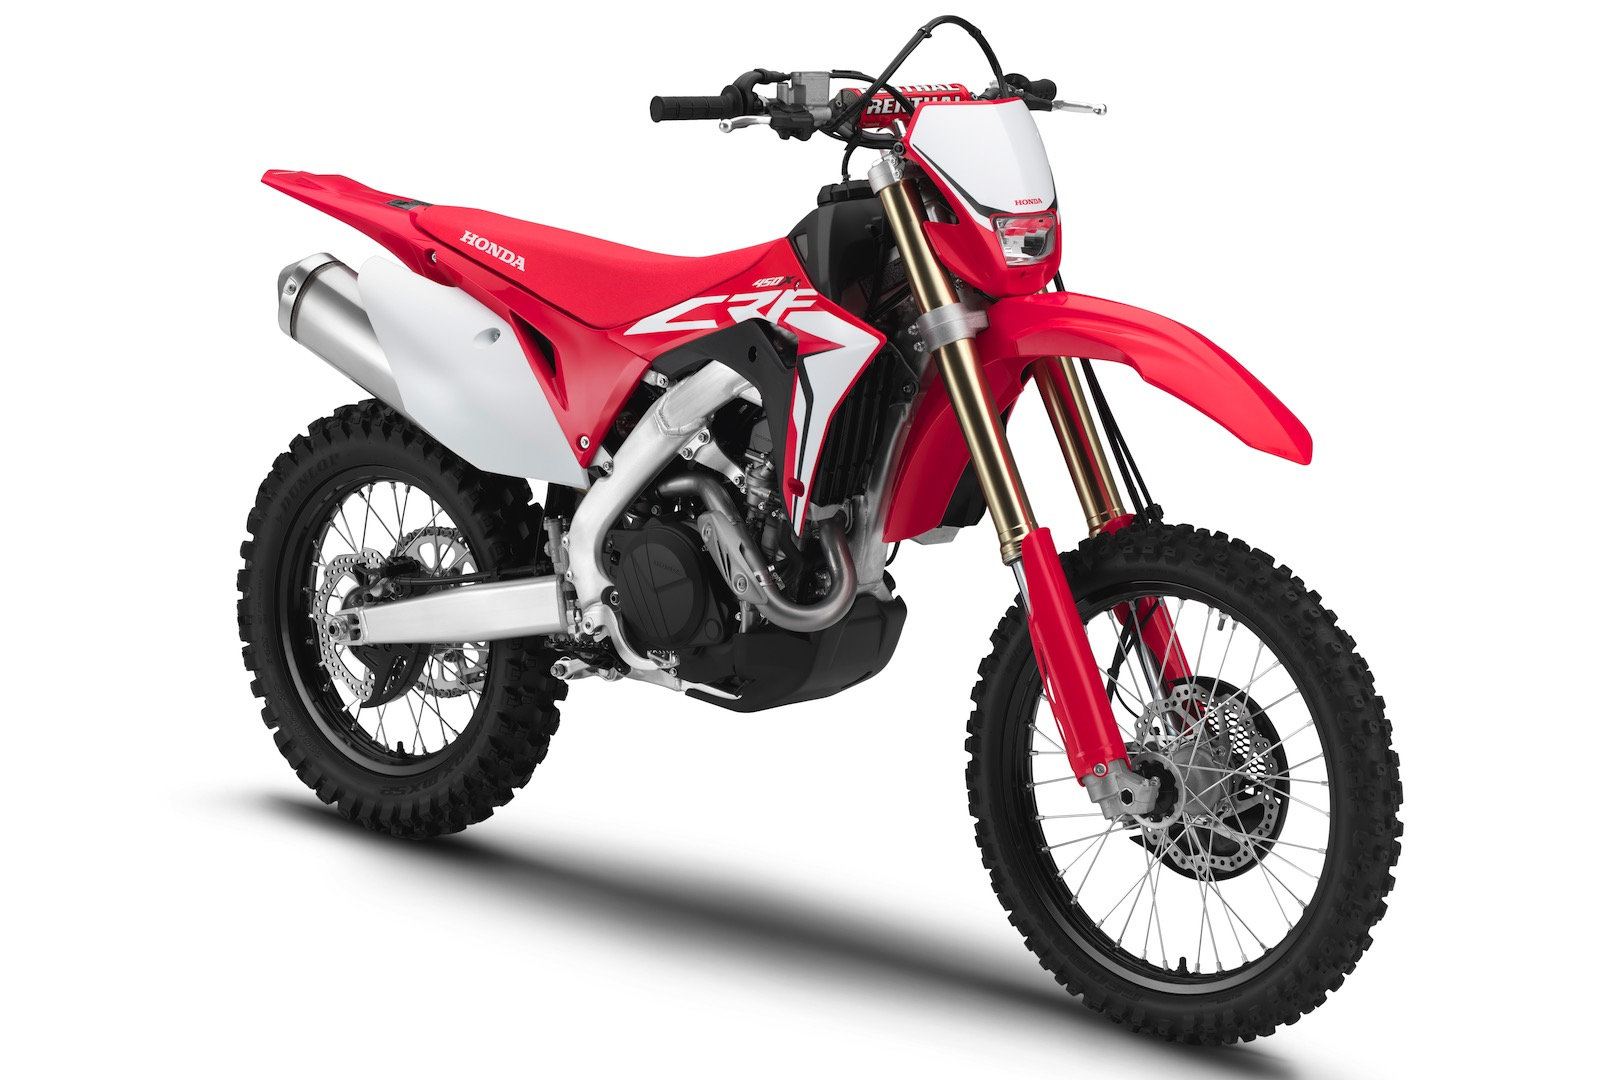 2019 honda crf450x review- right front